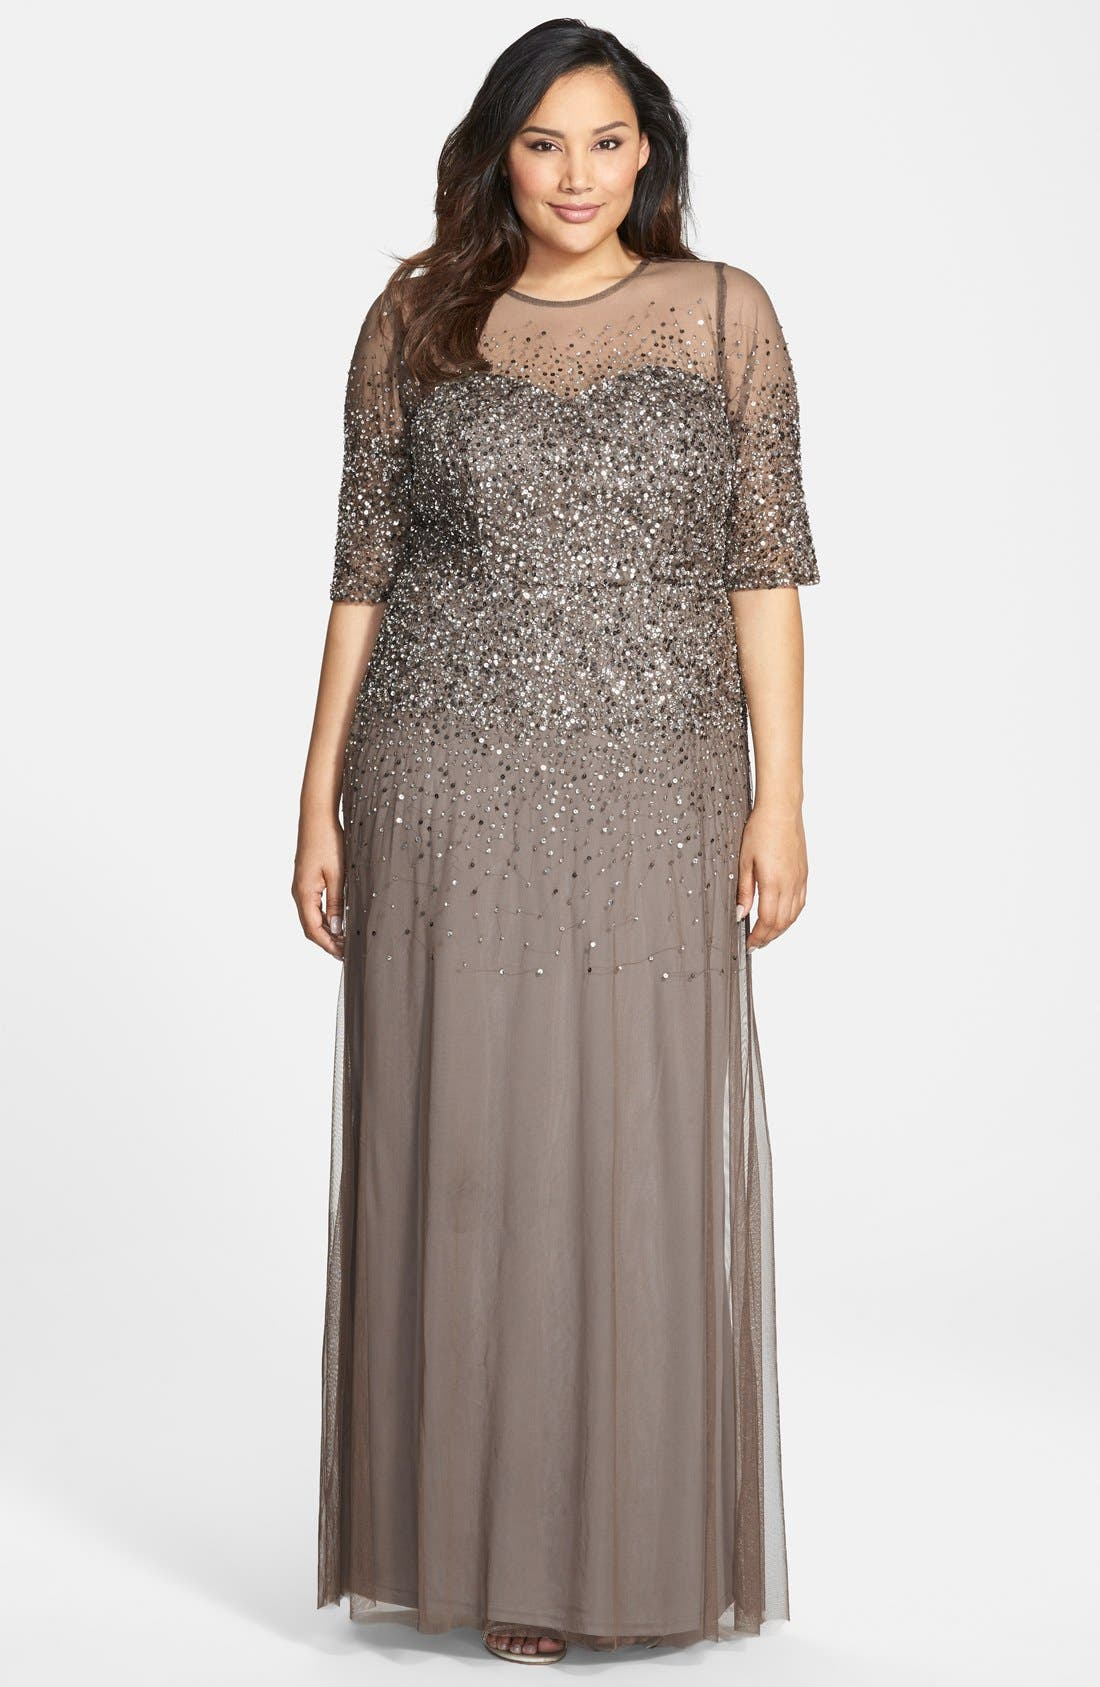 Alternate Image 1 Selected - Adrianna Papell Beaded Illusion Gown (Plus Size)